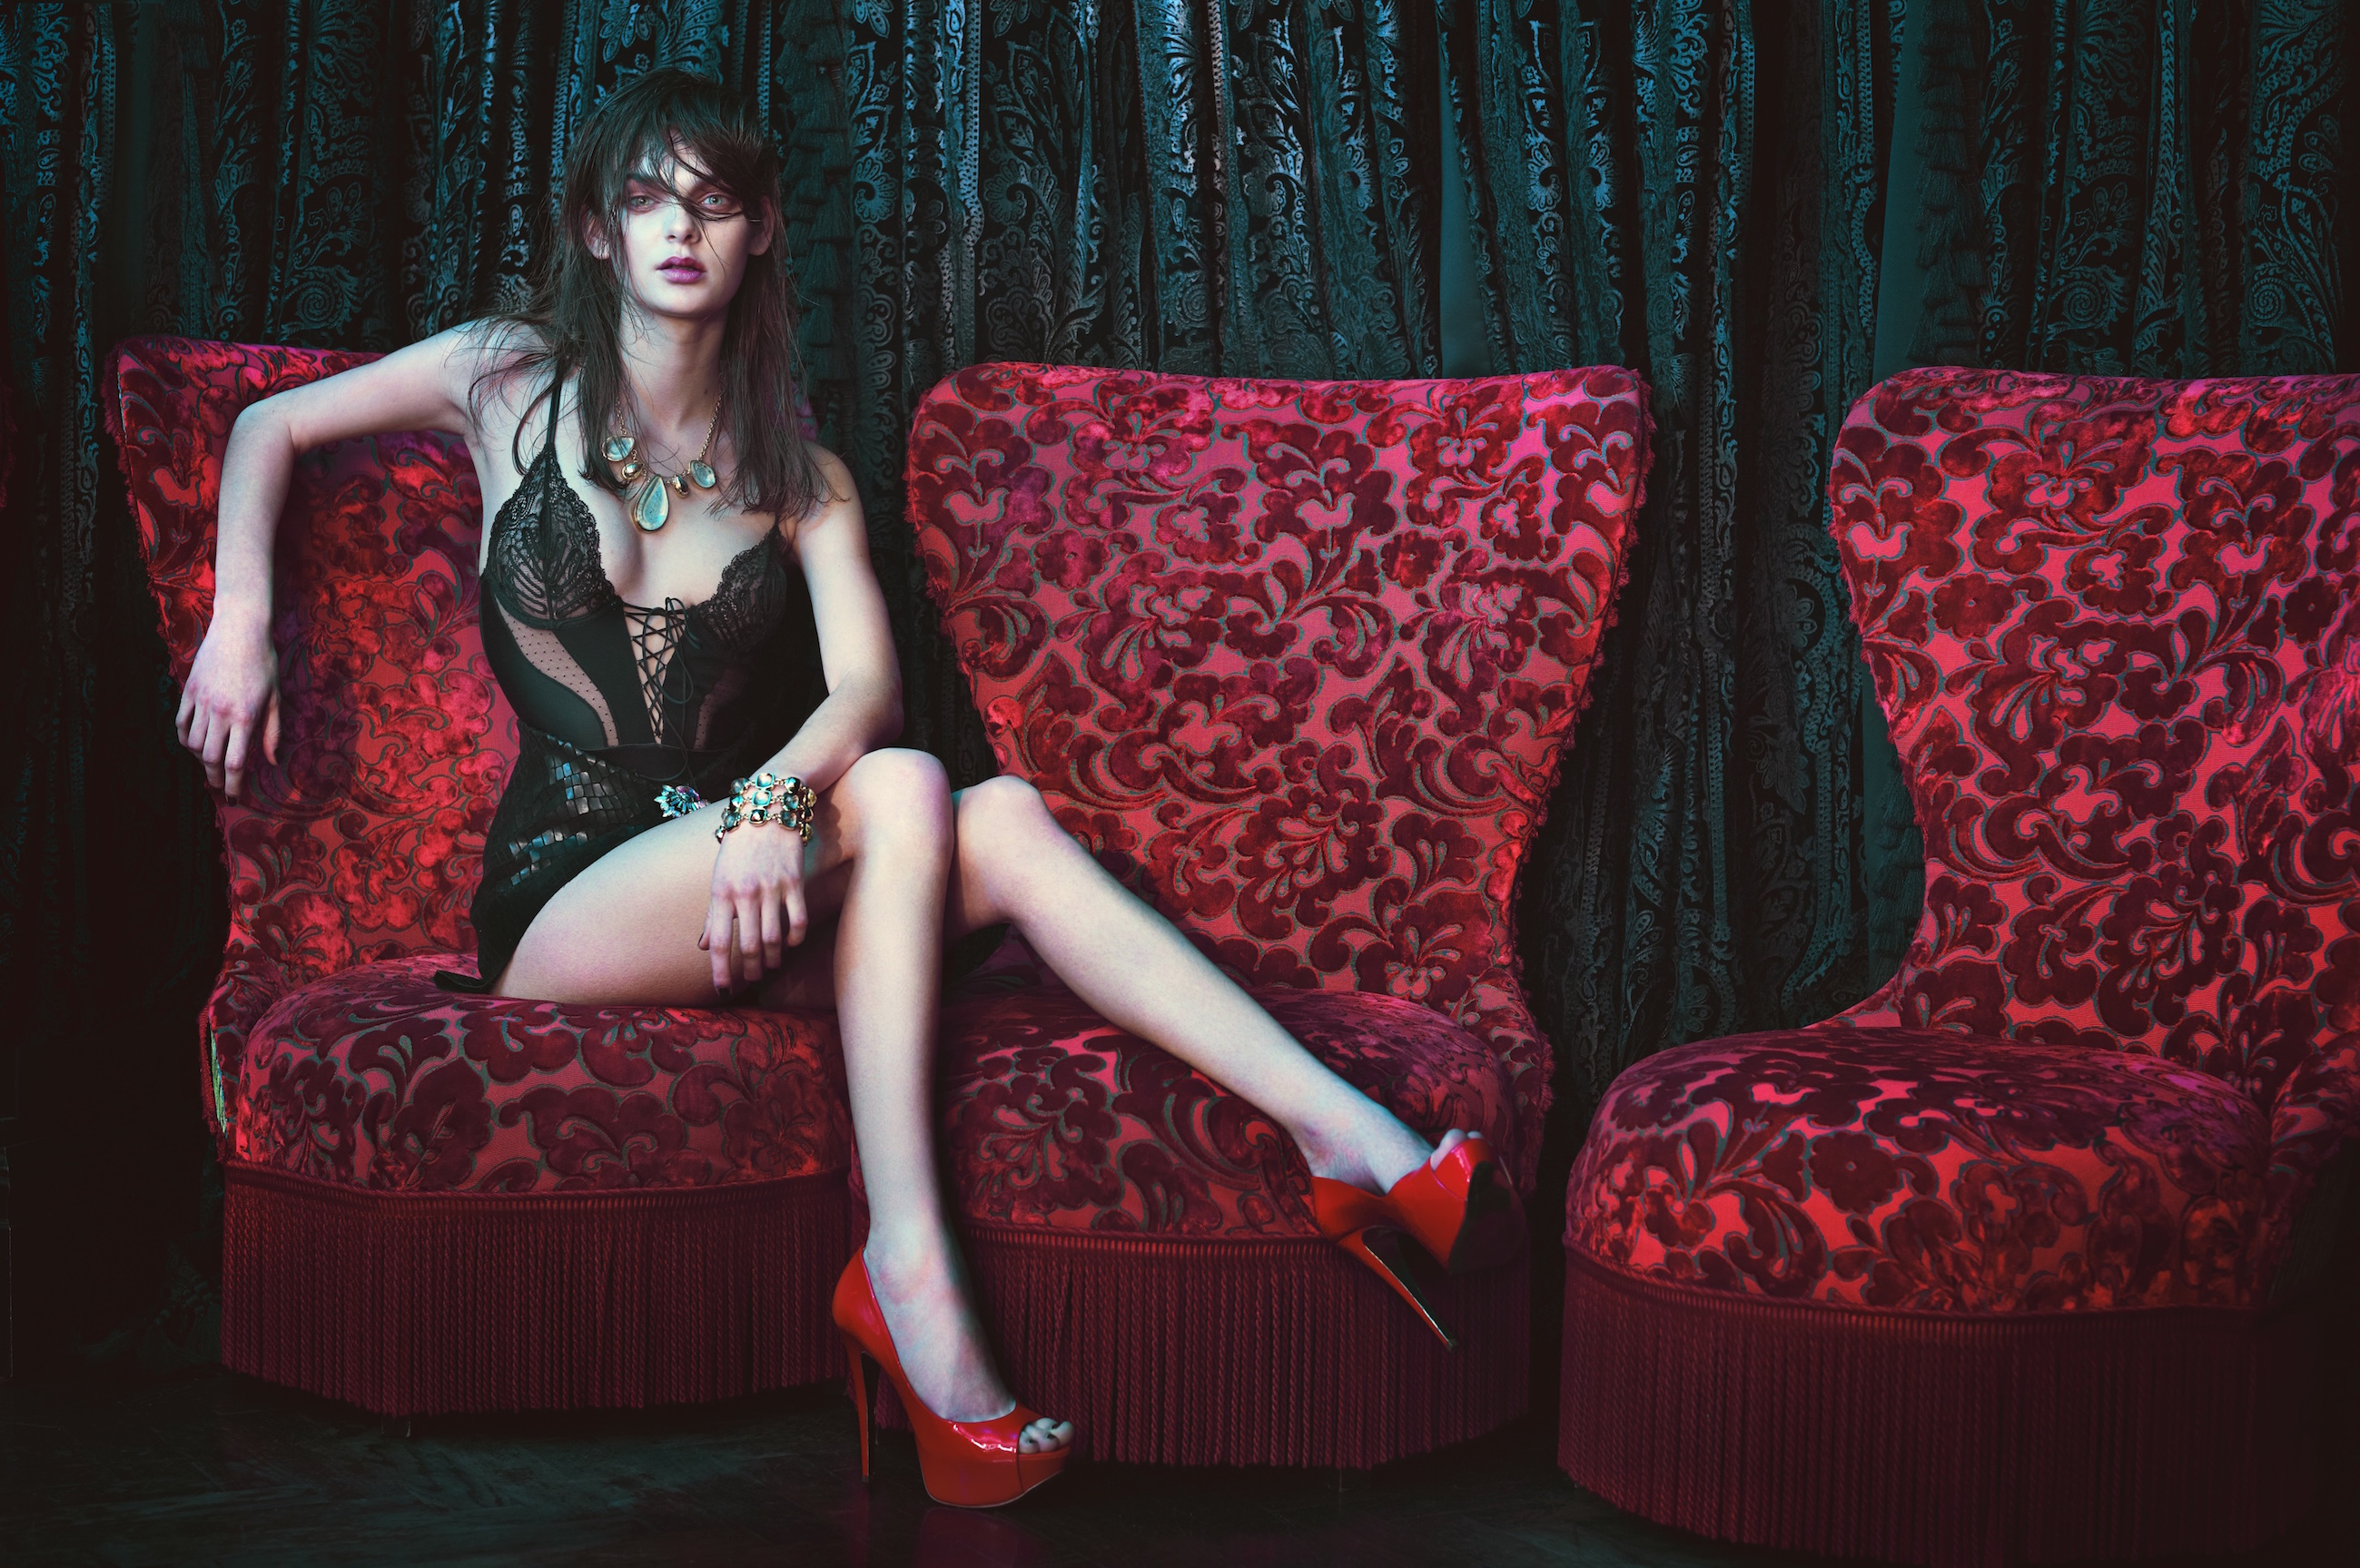 Boudoir shoot by Francesca Barrow